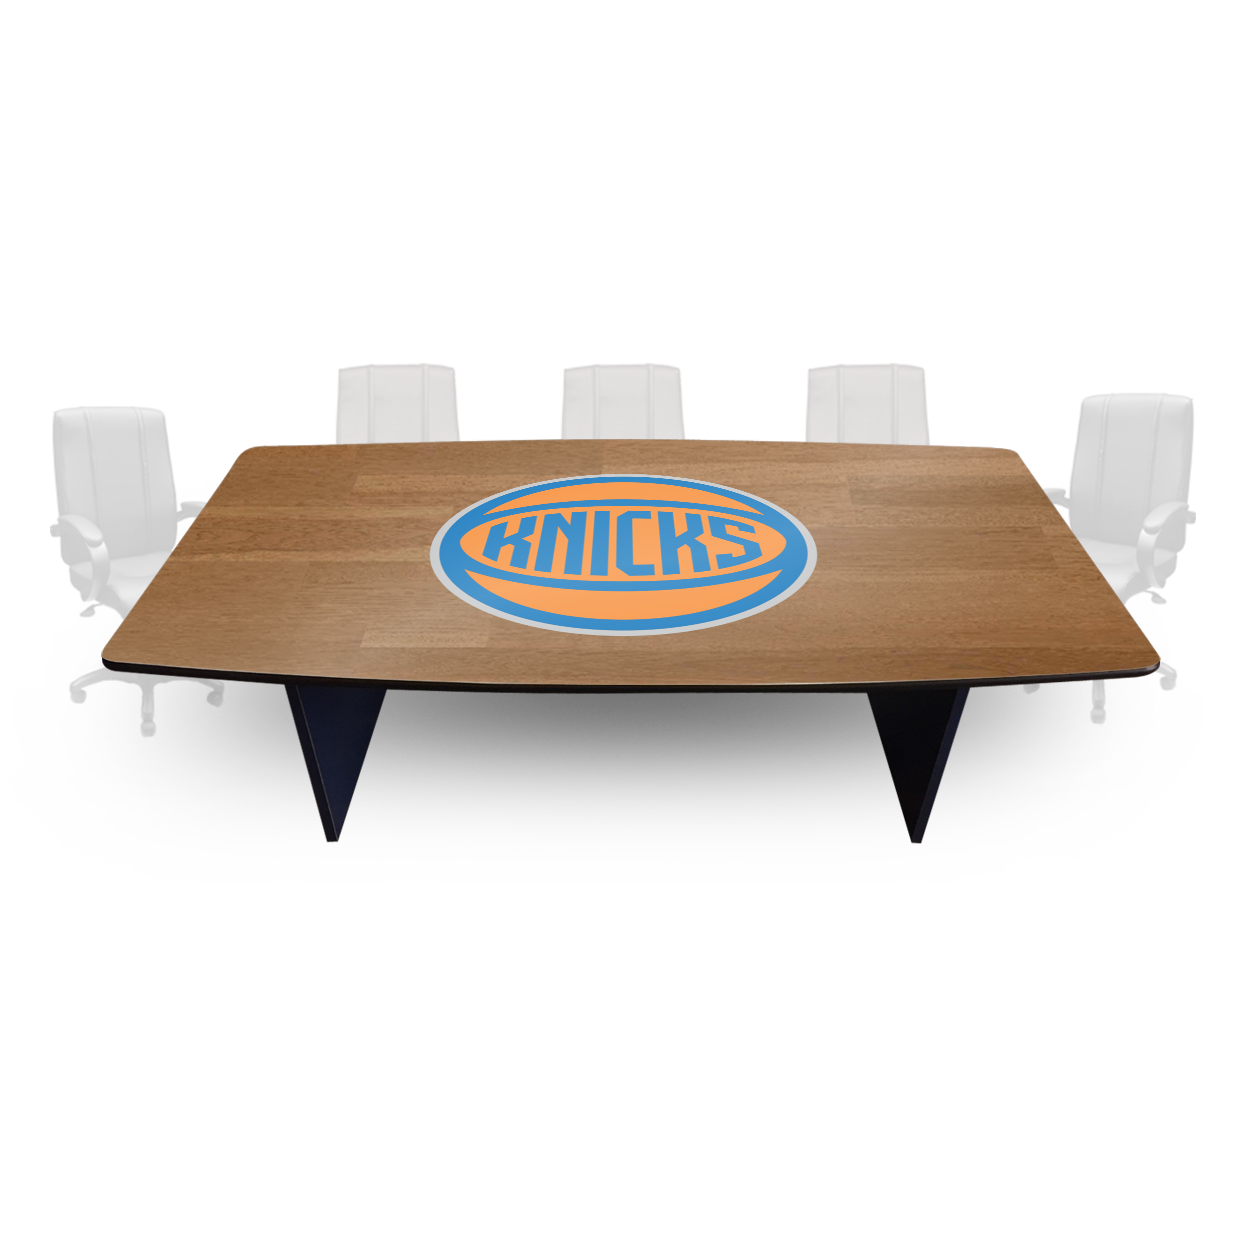 Branded Conference Room Table Foot Conference Room Table - 6 foot conference table